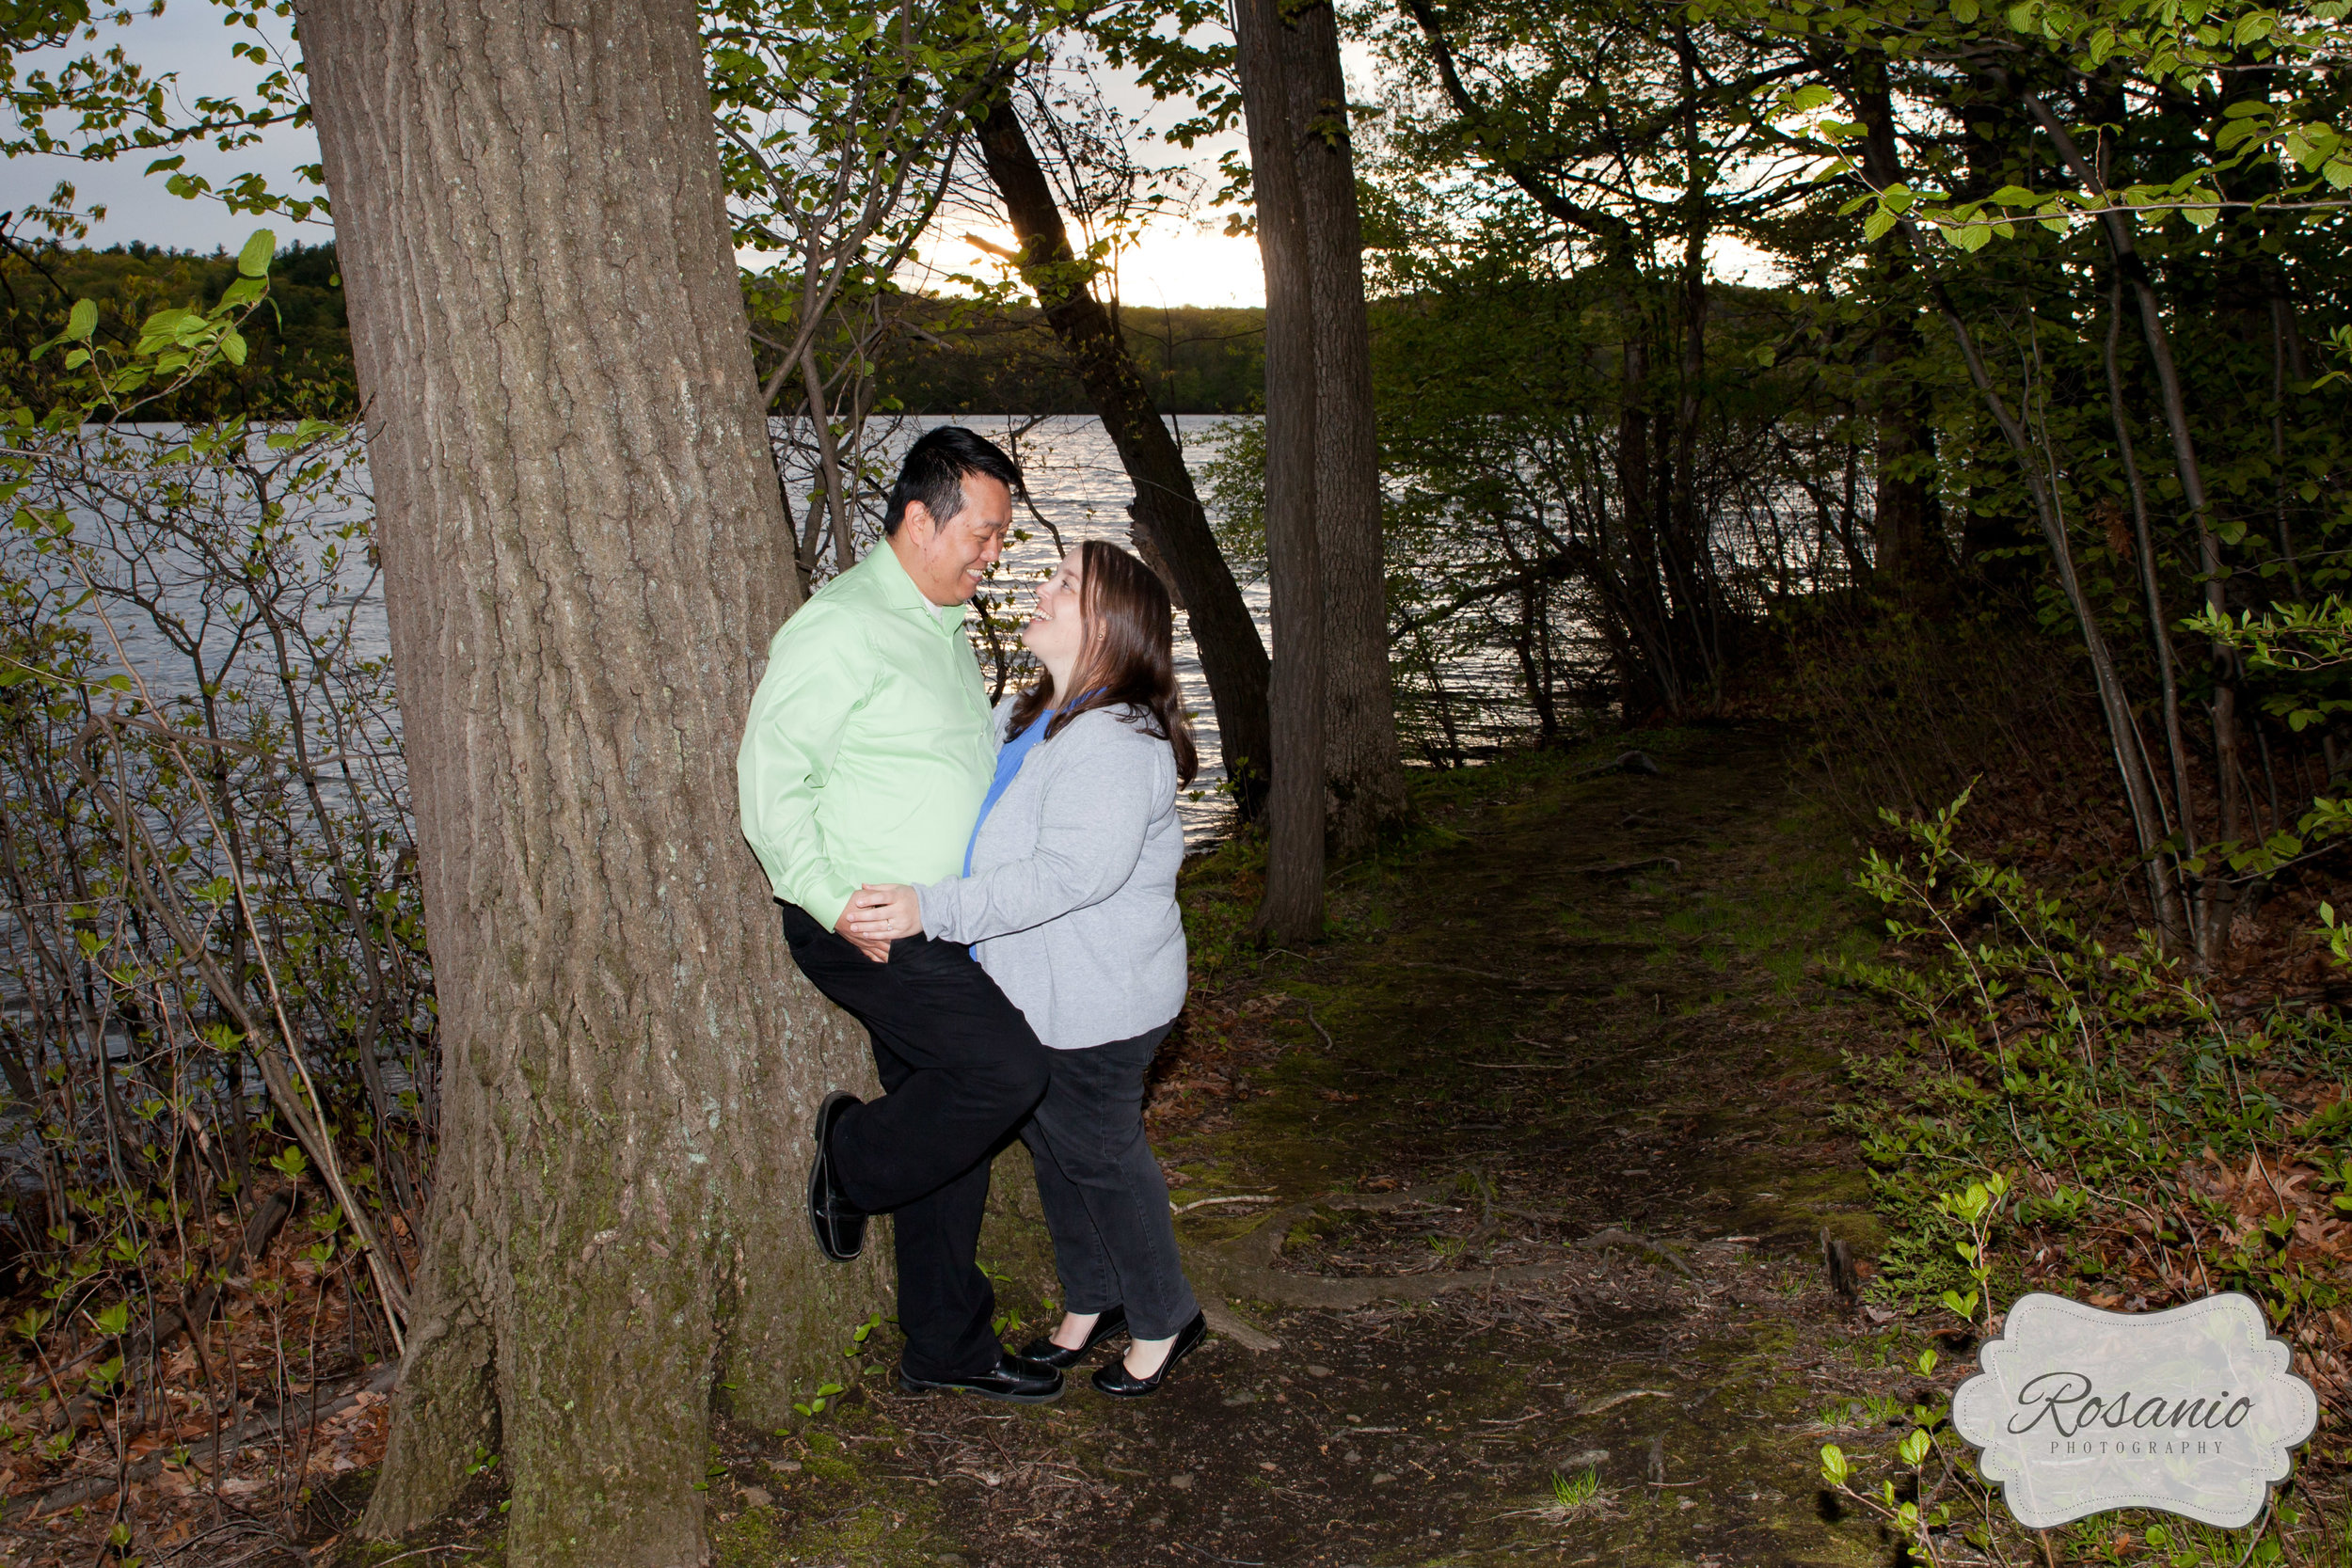 Rosanio Photography | Rolling Ridge Retreat and Conference Center Engagement Photography | Massachusetts Engagement Photographer